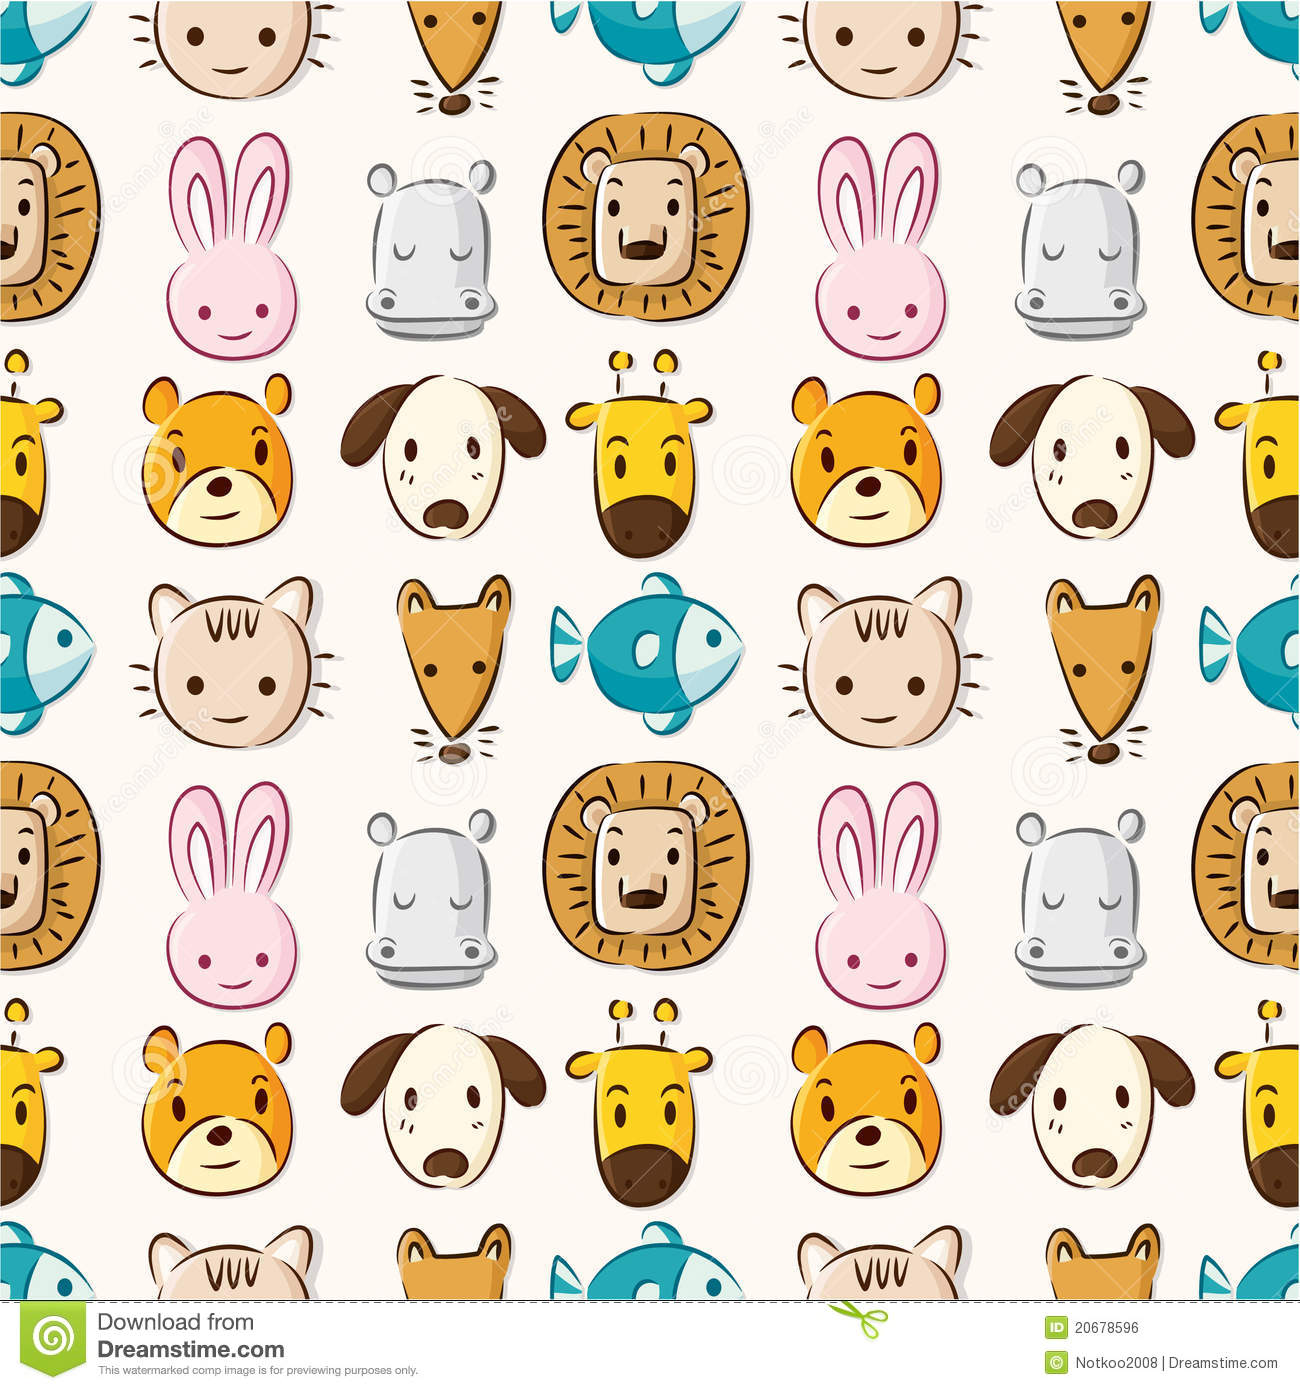 Cute Dog Doodle Wallpaper Cartoon Animal Head Seamless Pattern Royalty Free Stock